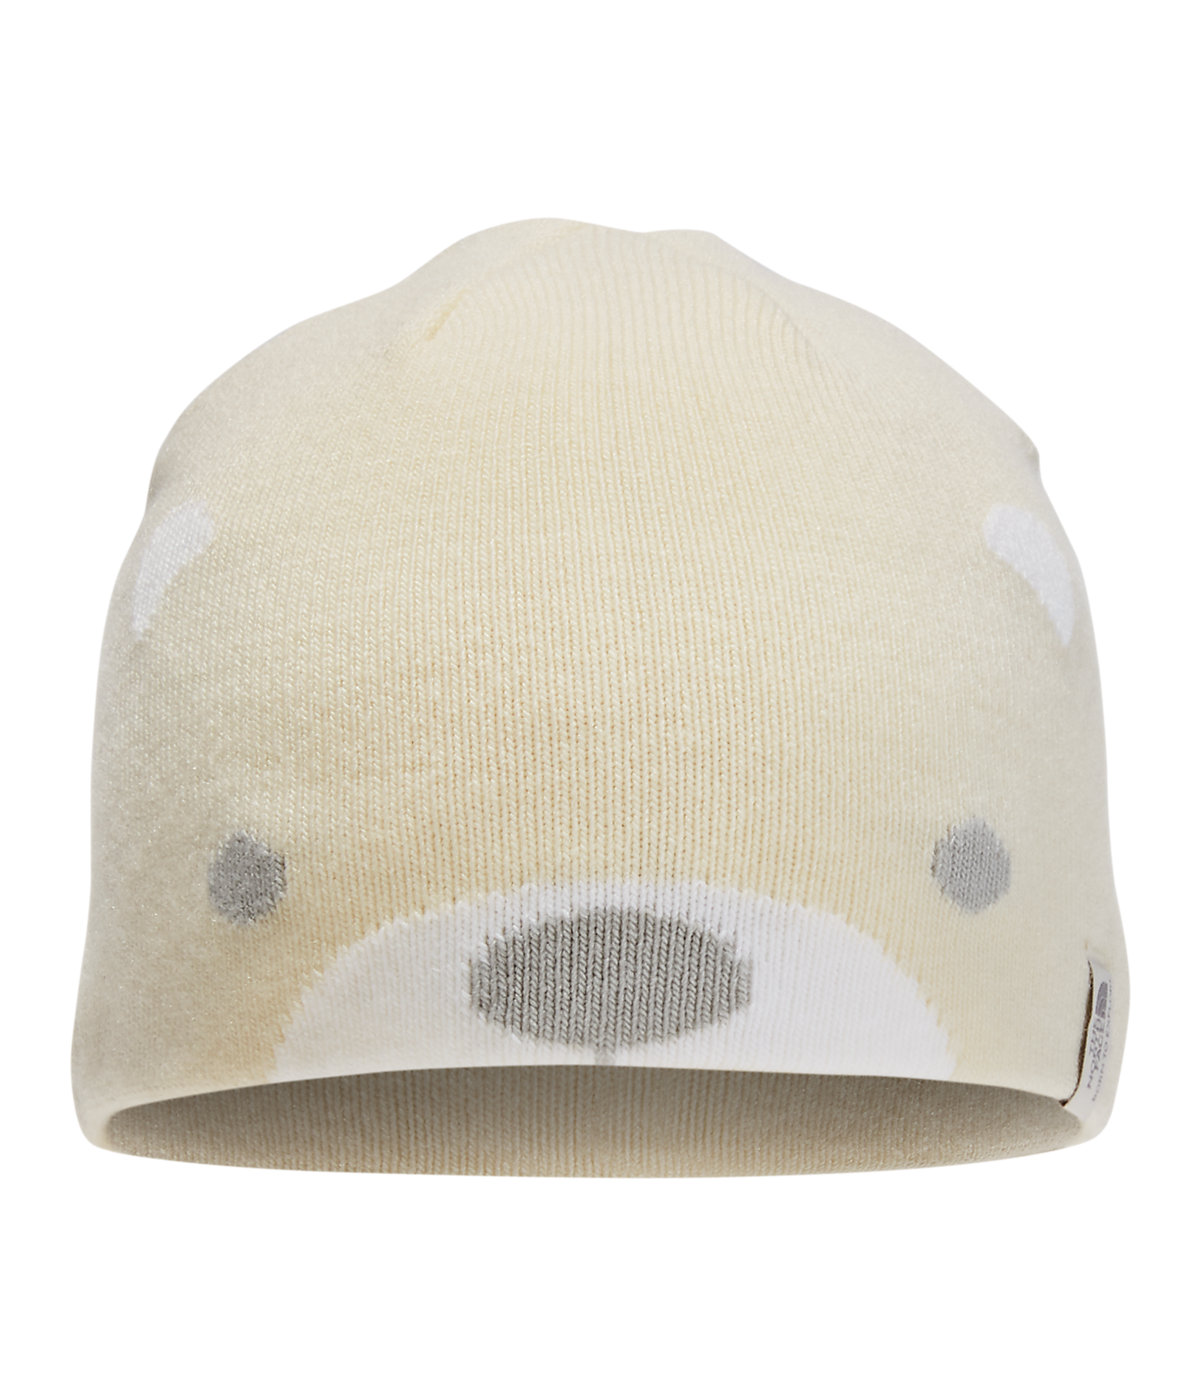 d250d7f67 Baby Friendly Faces Beanie in 2019 | Products | Beanie, Beanie hats ...